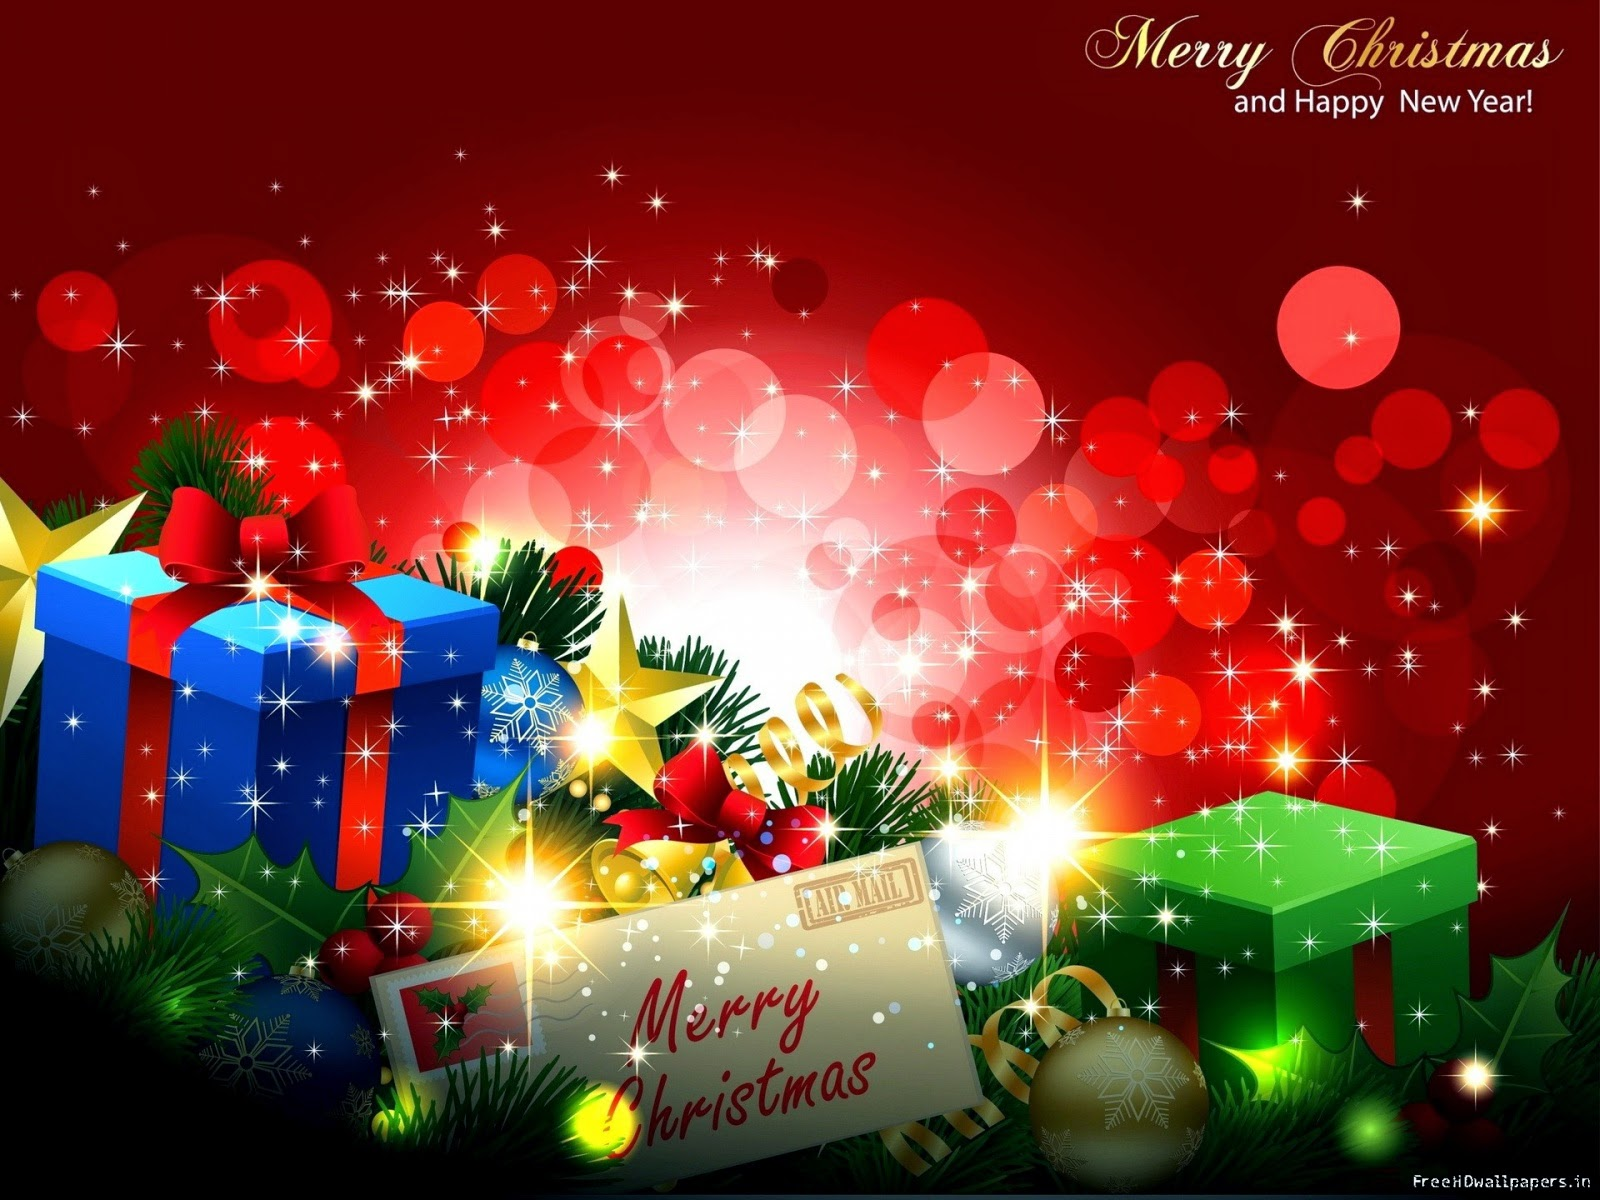 Free Download Merry Christmas Happy New Year 2015 Wallpaper